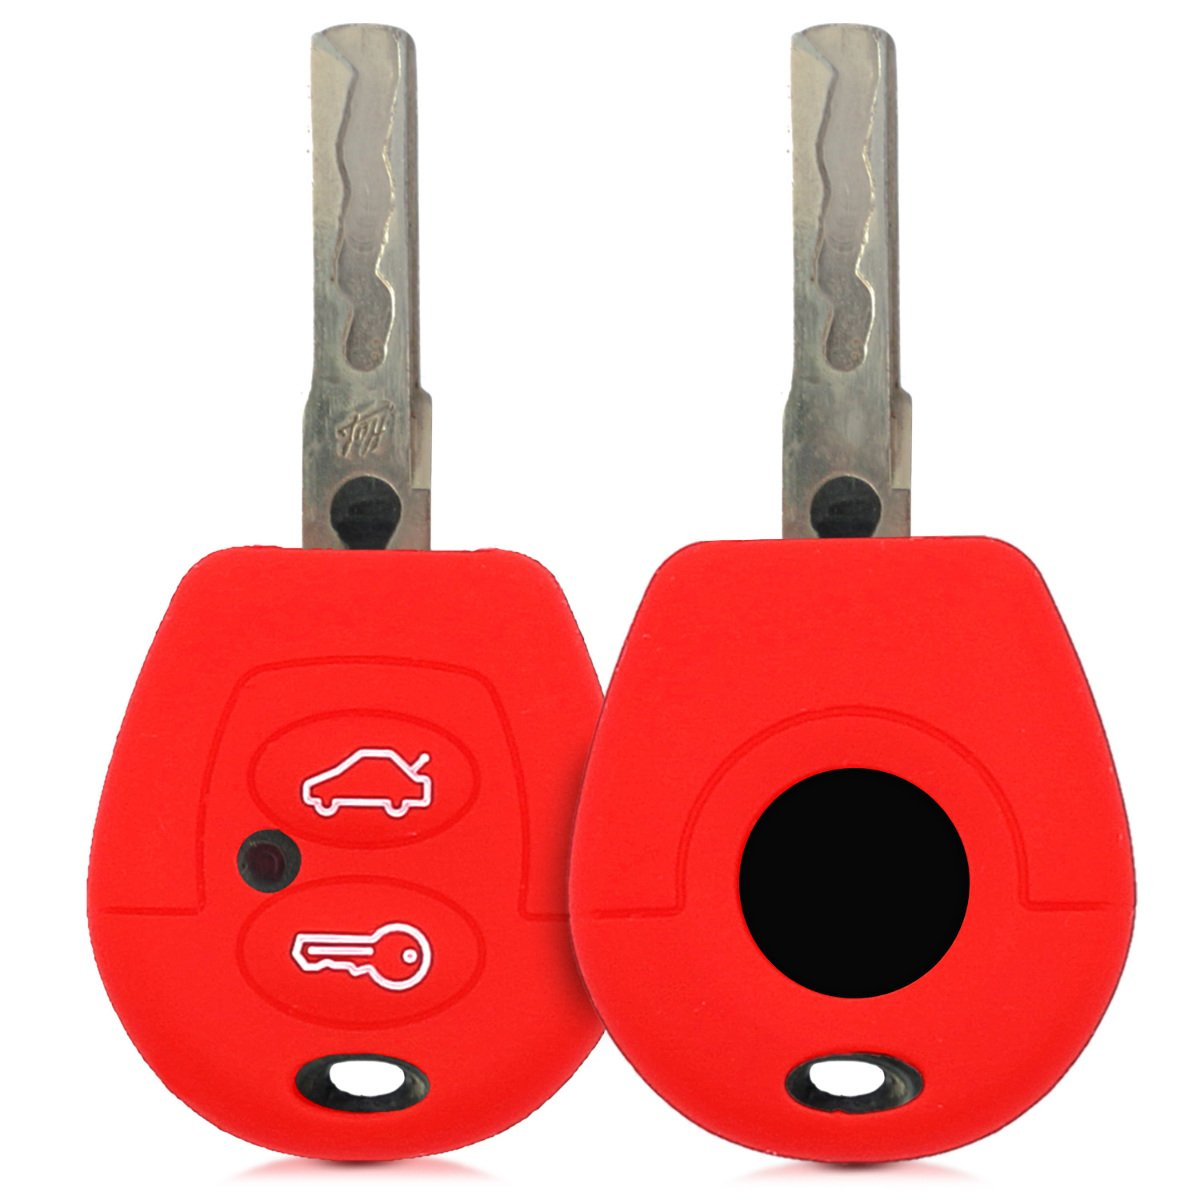 kwmobile VW Skoda Seat Car Key Cover - Silicone Protective Key Fob Cover for VW Skoda SEAT 2 Button Remote Control Car Key - Red KW-Commerce 43654.09_m000646